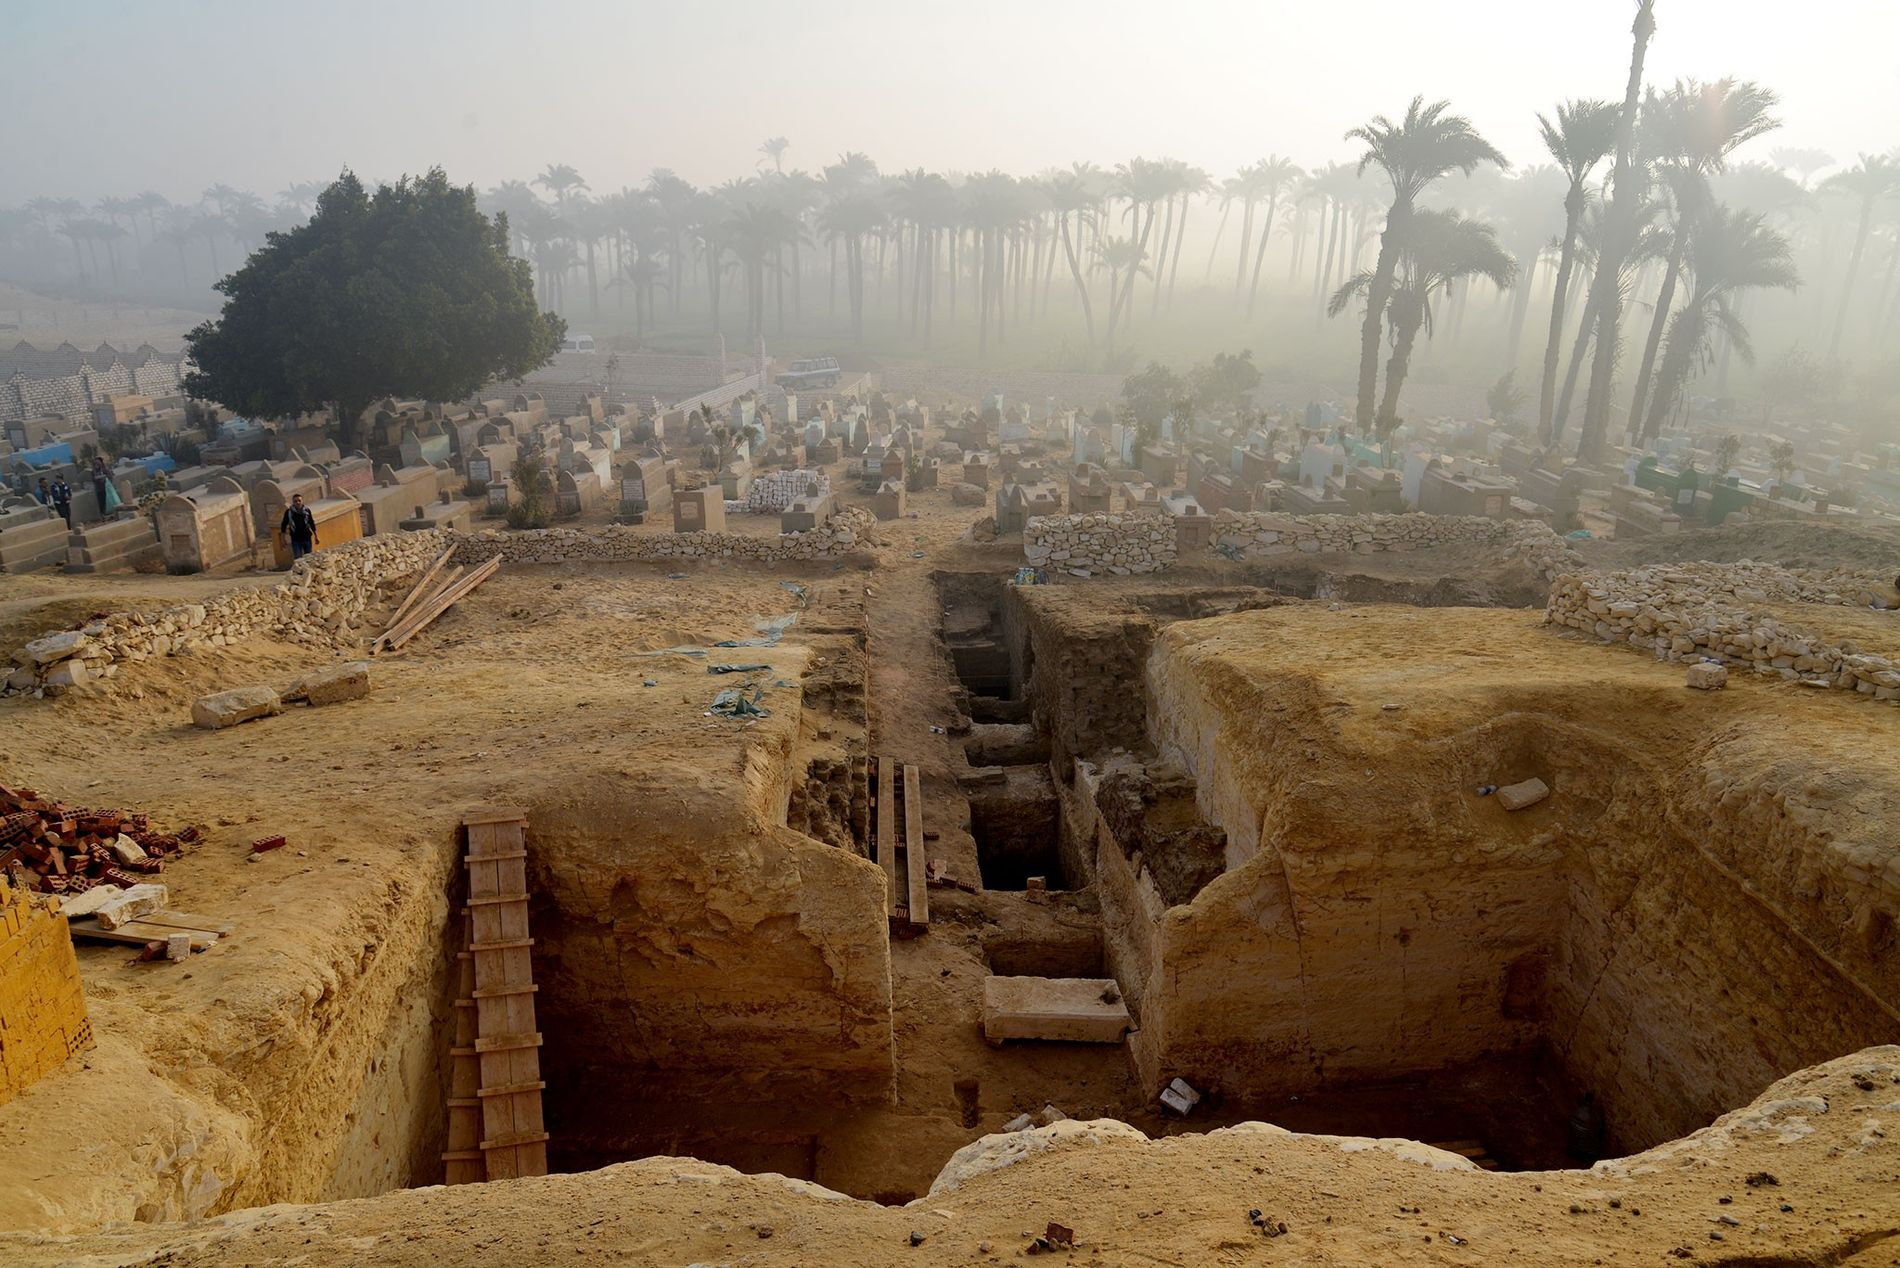 <p>The large collection of ancient burials at Lisht in Egypt could offer insights into life and death in the Middle Kingdom roughly 4,000 years ago.</p>